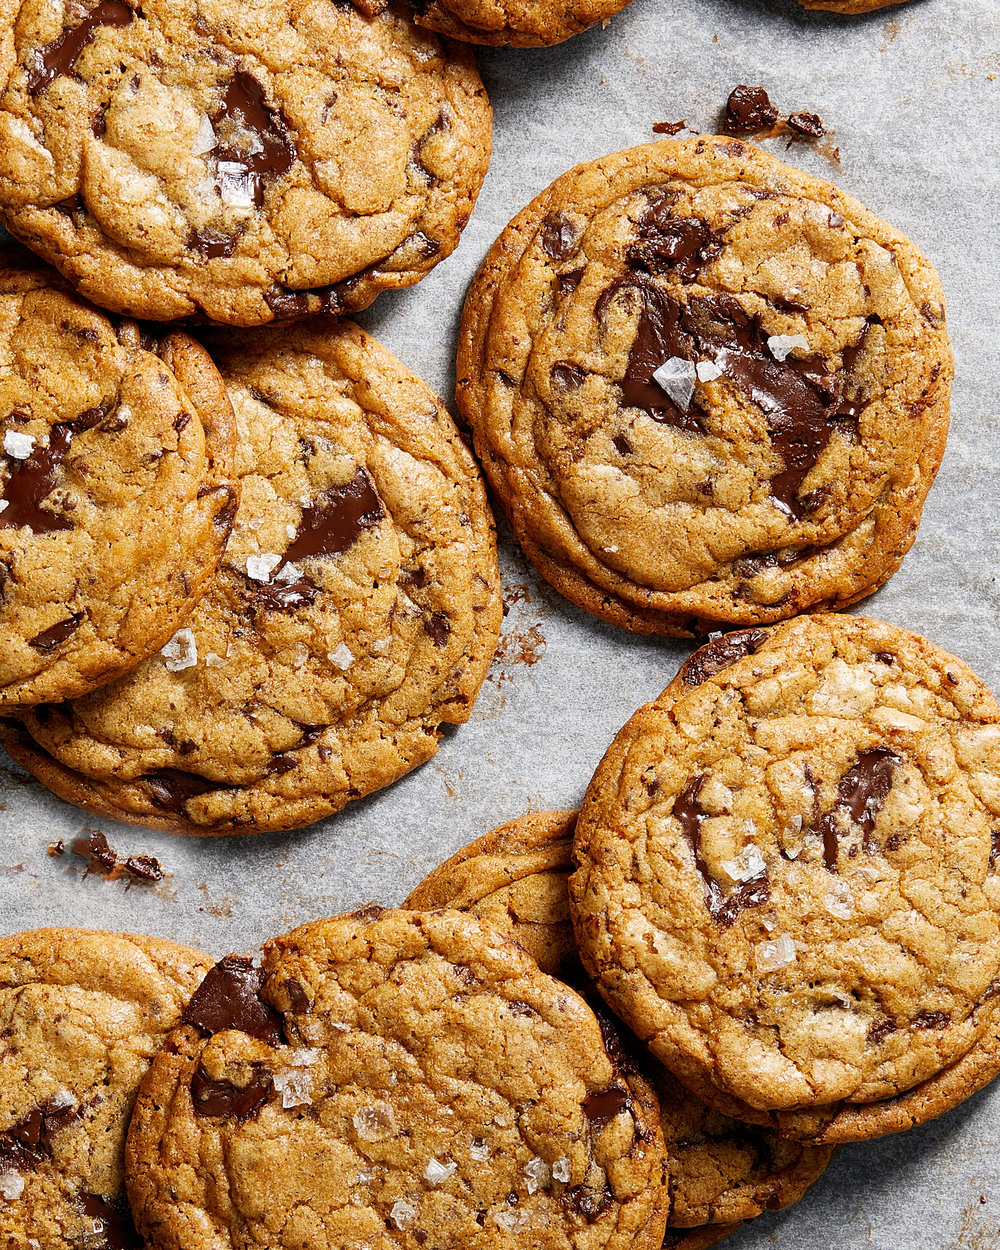 RIPPLE CHOCOLATE CHIPS